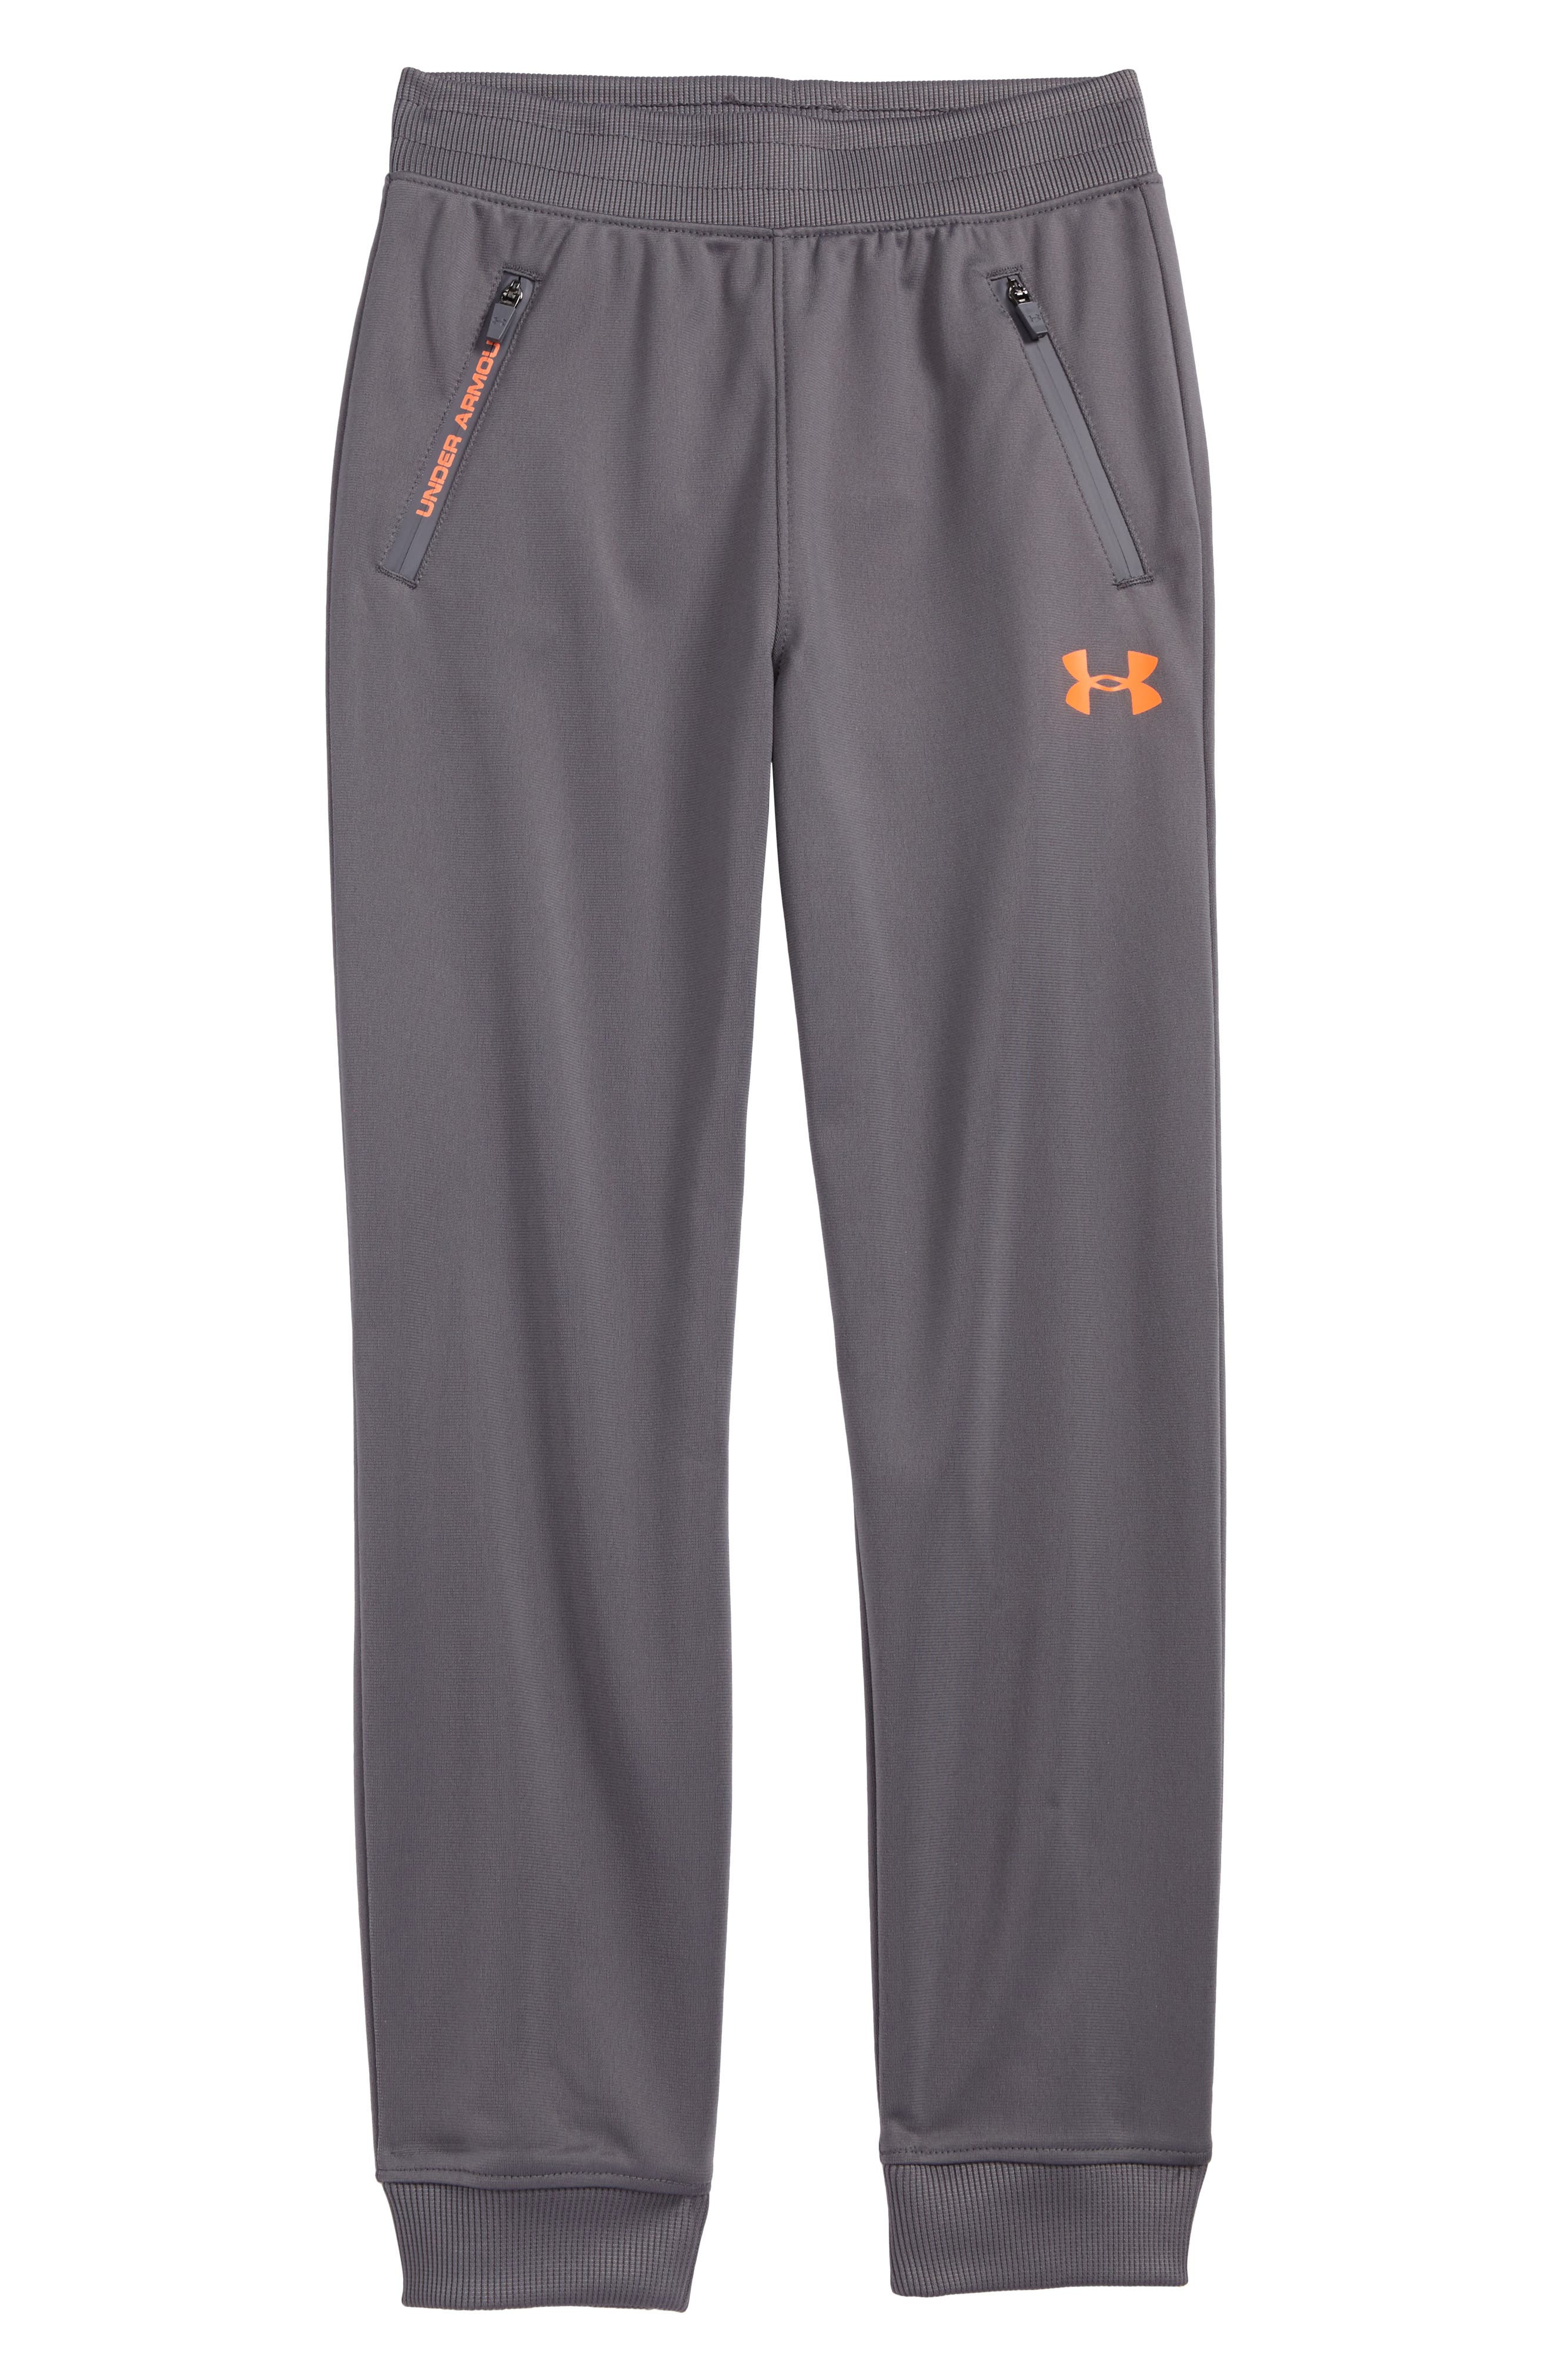 Alternate Image 1 Selected - Under Armour Pennant 2.0 Tapered Pants (Toddler Boys & Little Boys)